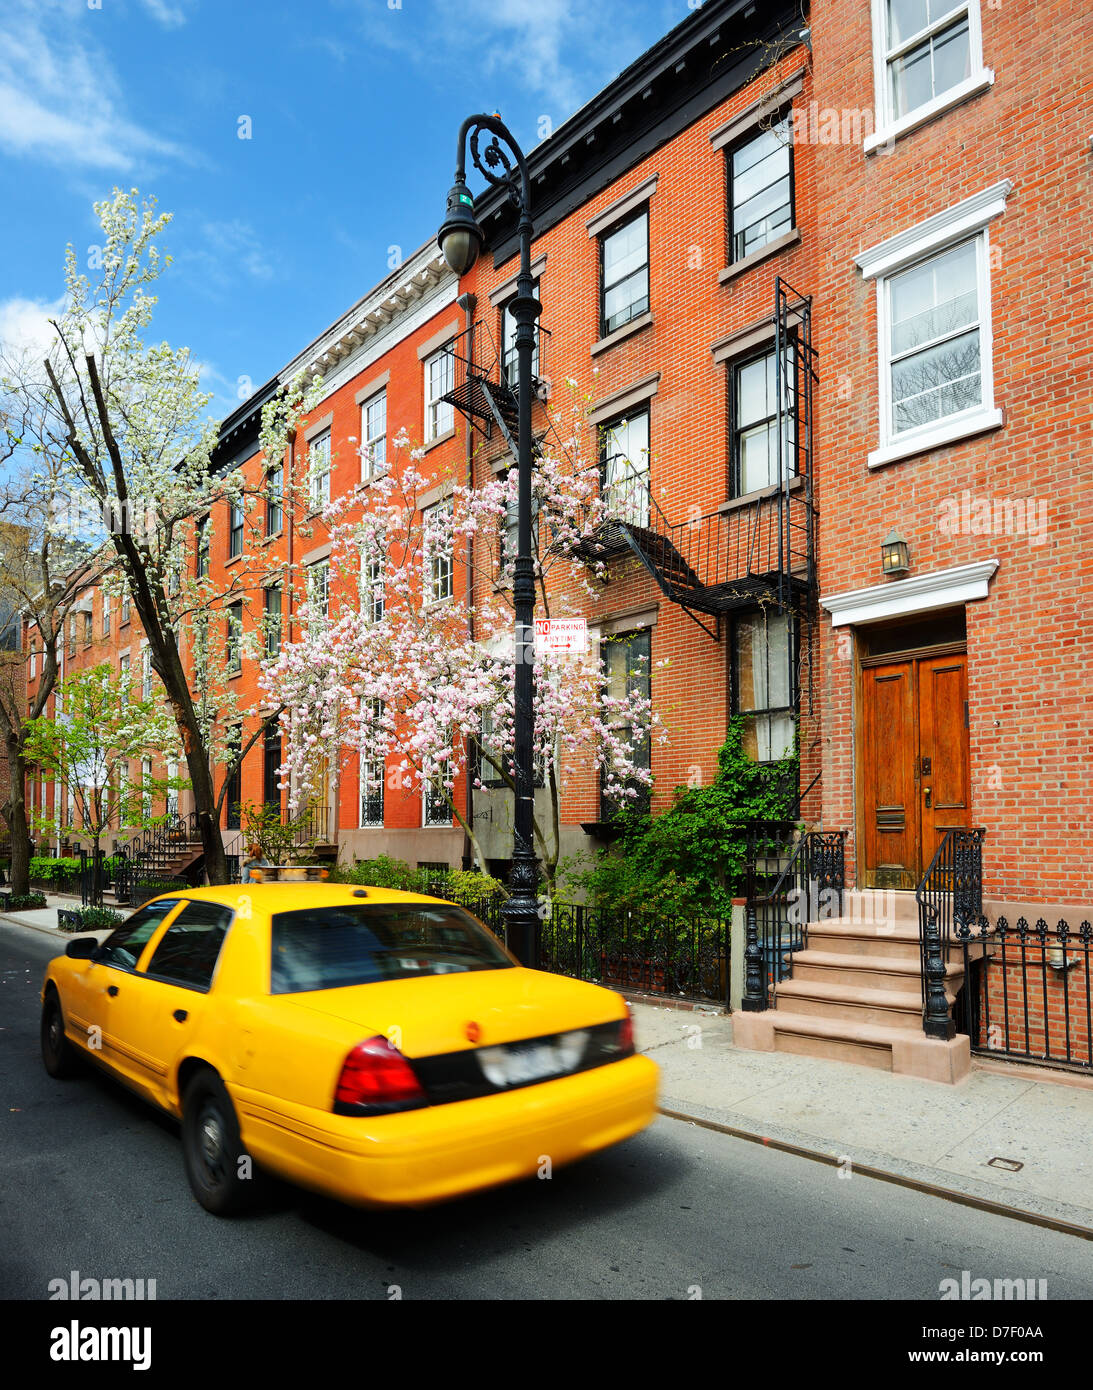 Yellowcab passes by Greenwich Village apartments in New York City. - Stock Image